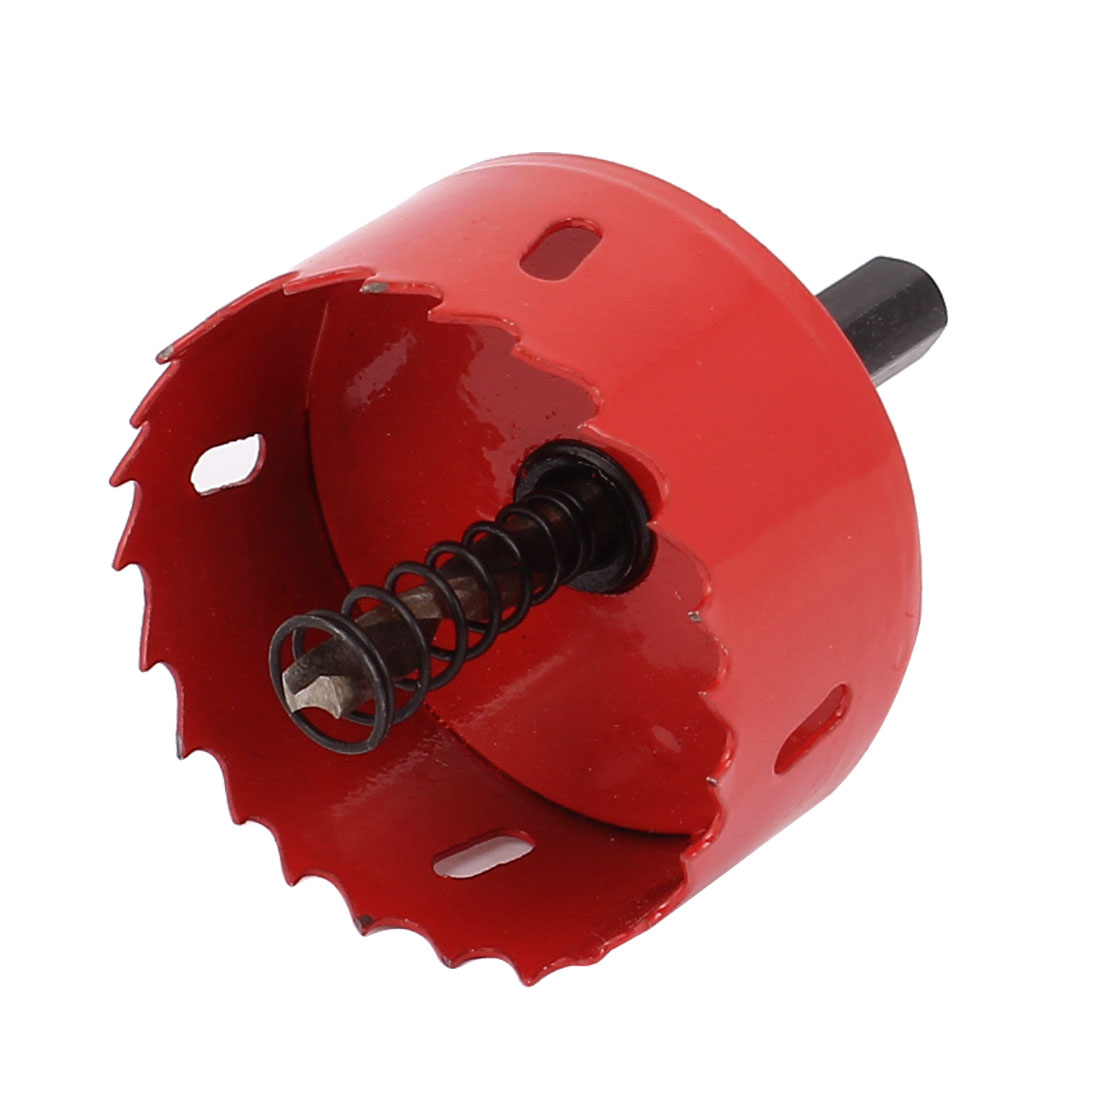 Подробнее о UXCELL 60Mm Cutting Dia Toothed Bi Metal Hole Saw Cutter Drill Bit Red For Wood Iron uxcell m42 hss triangle shank bi metal hole saw drill cutter 82mm long 28mm cutting dia